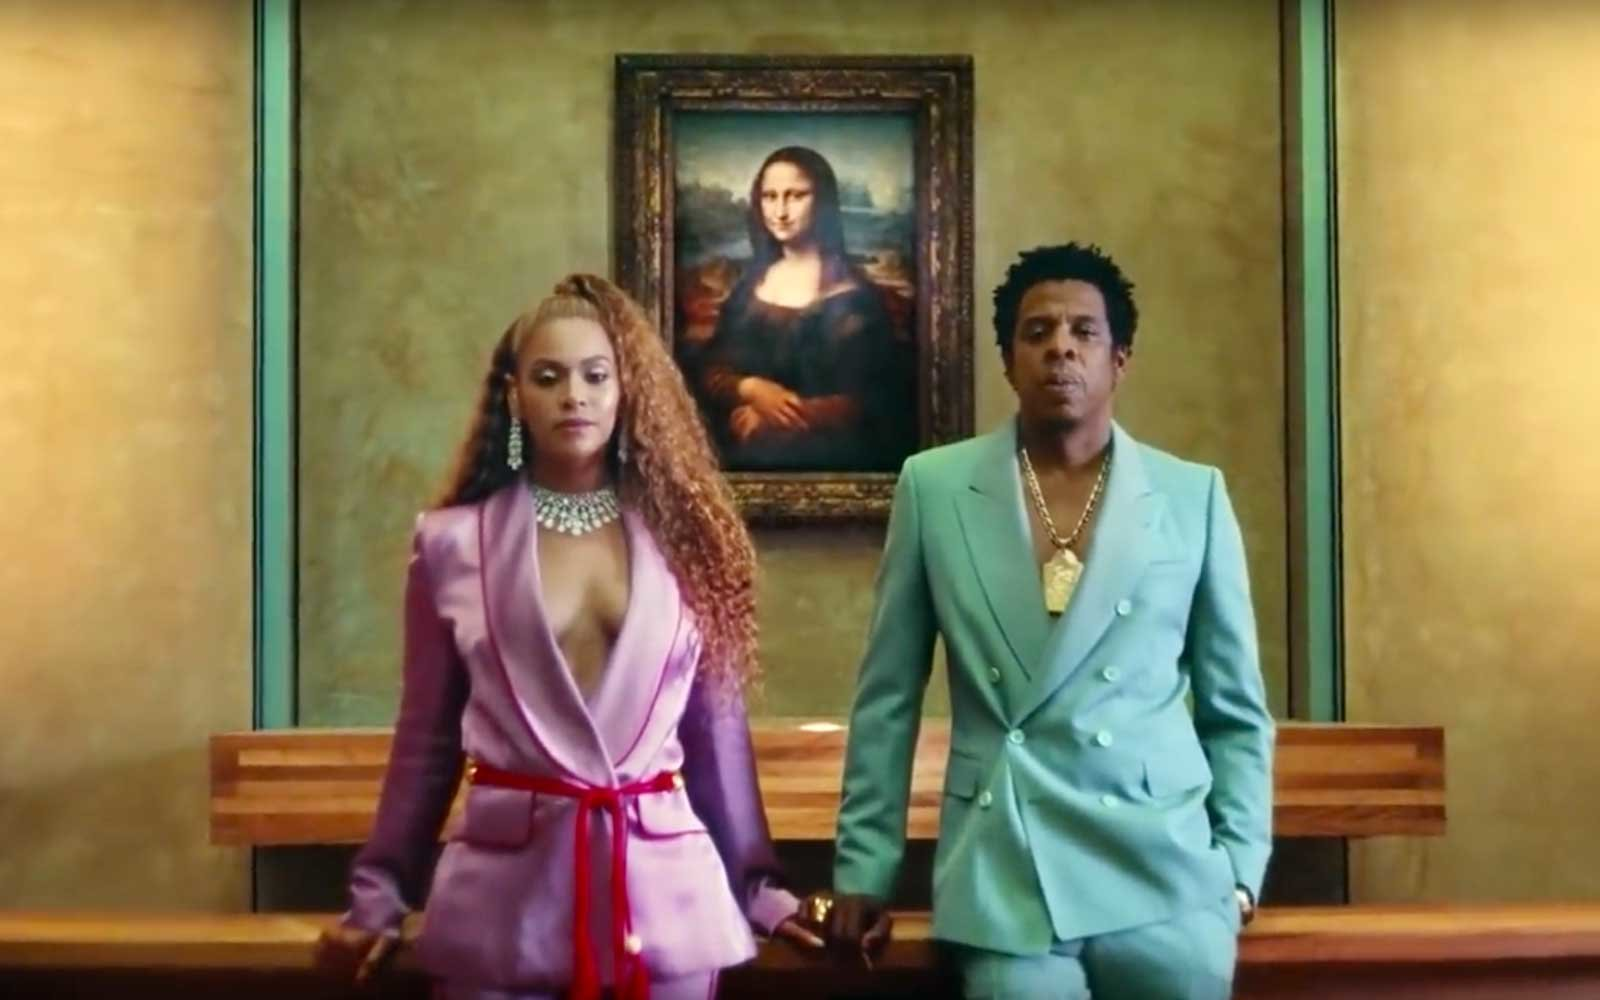 Beyoncé and Jay-Z, The Carters, Apeshit Music Video at the Louvre in Paris